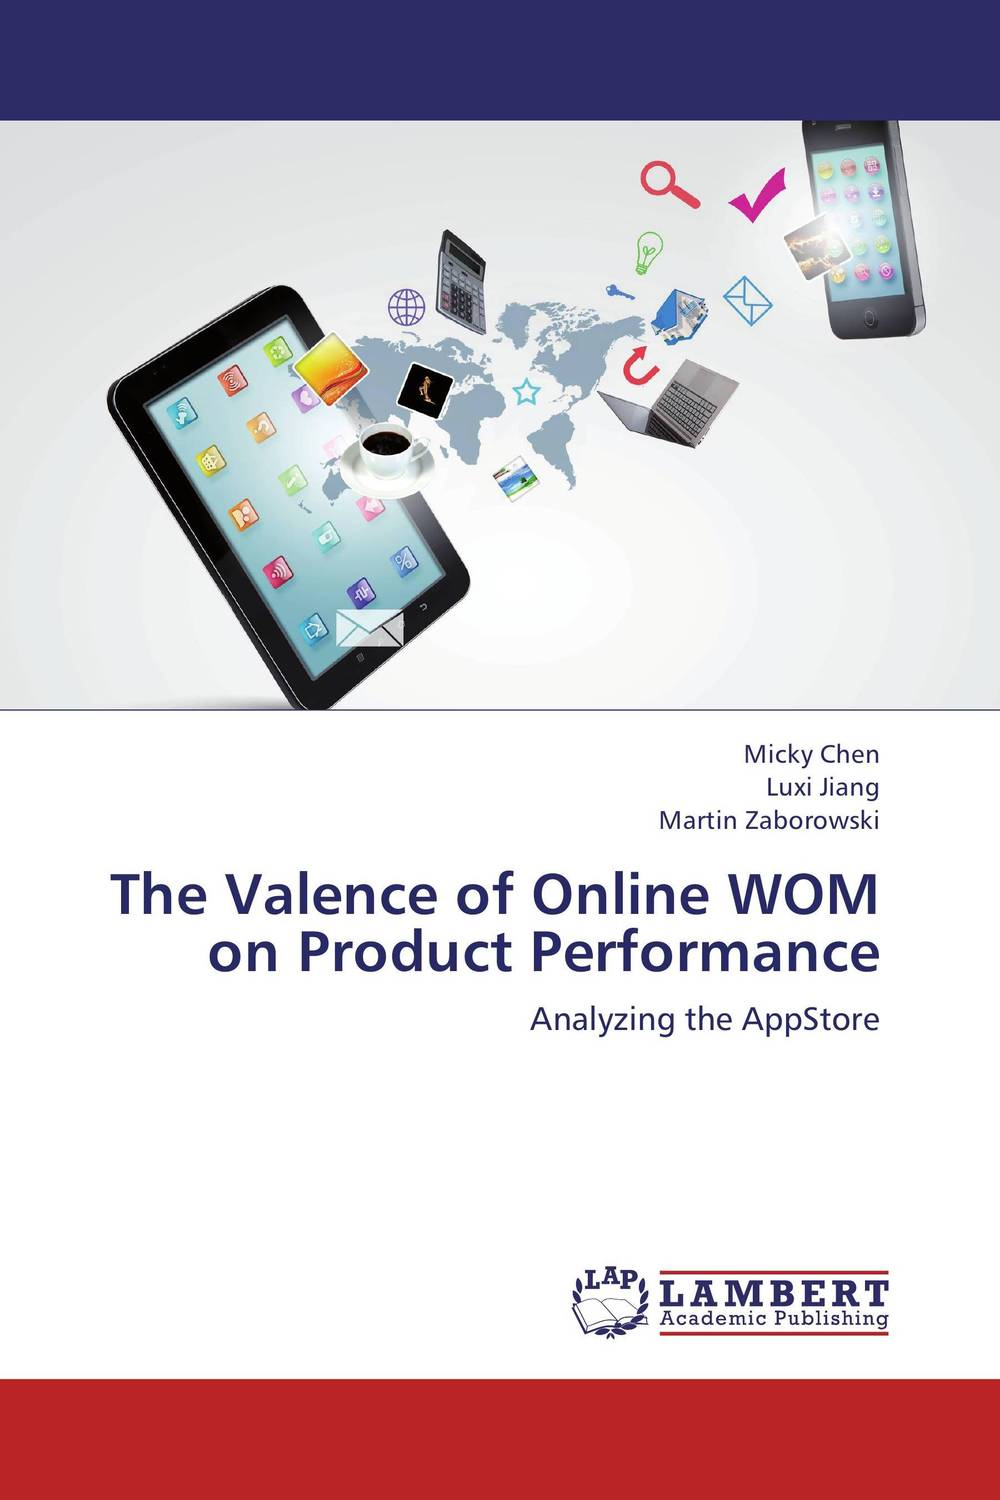 The Valence of Online WOM on Product Performance